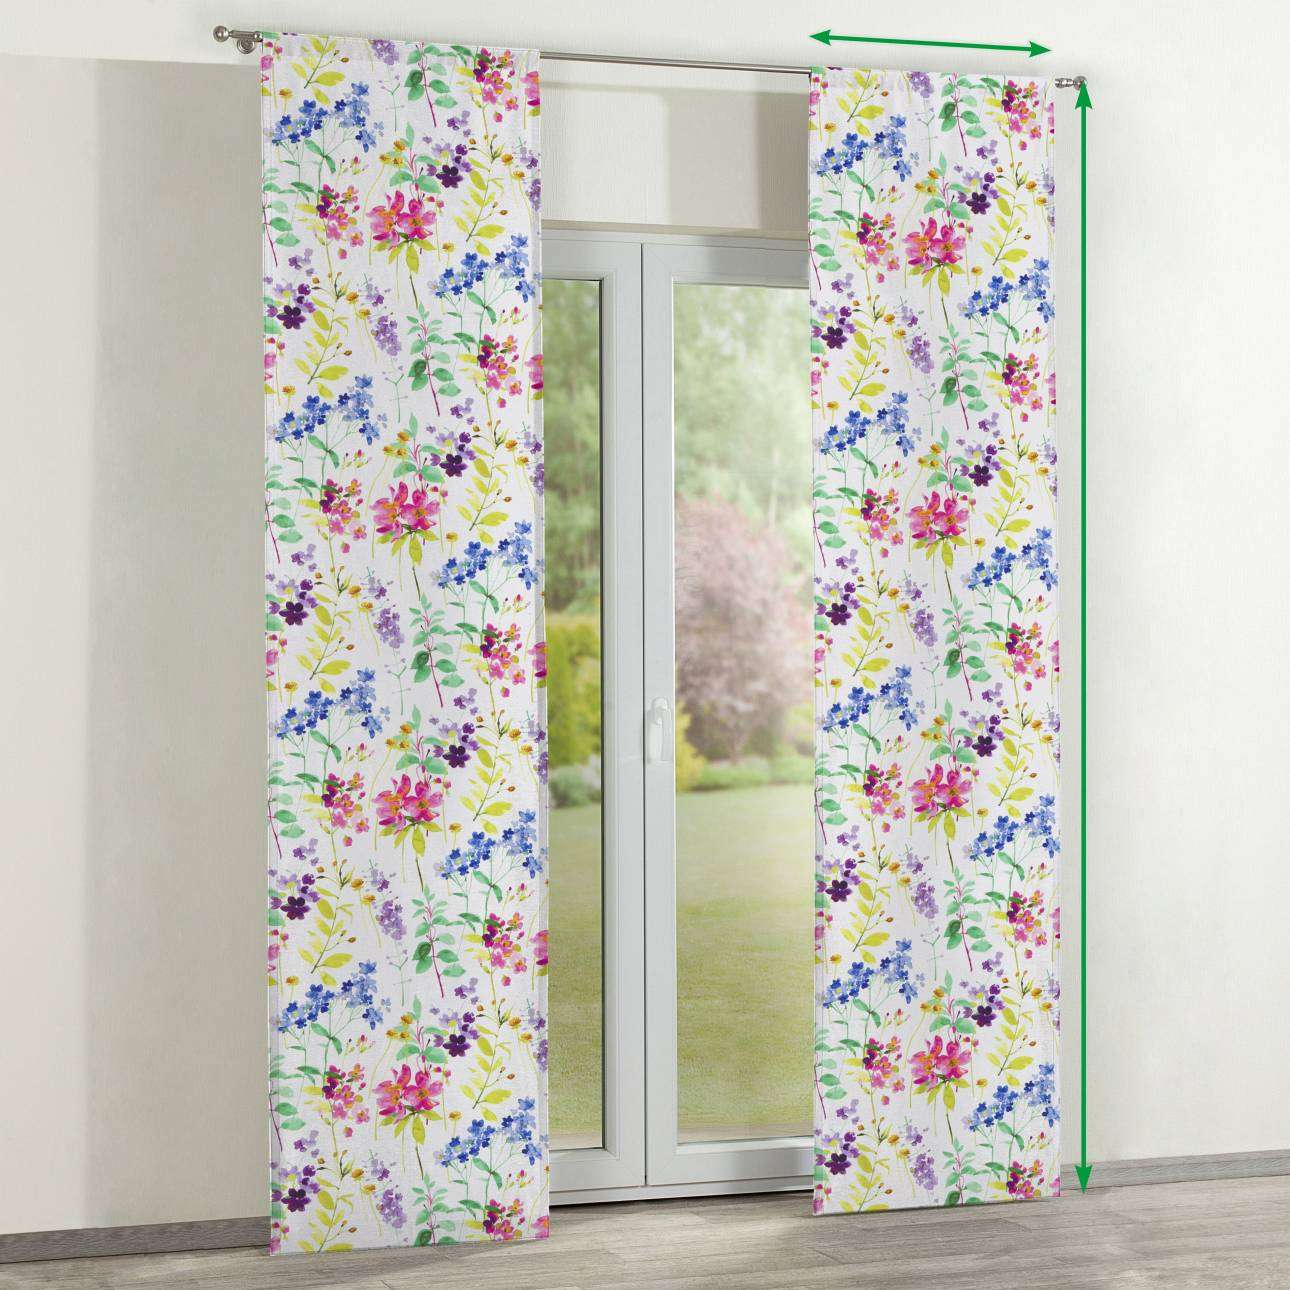 Slot panel curtains – Set of 2 in collection Monet, fabric: 140-06